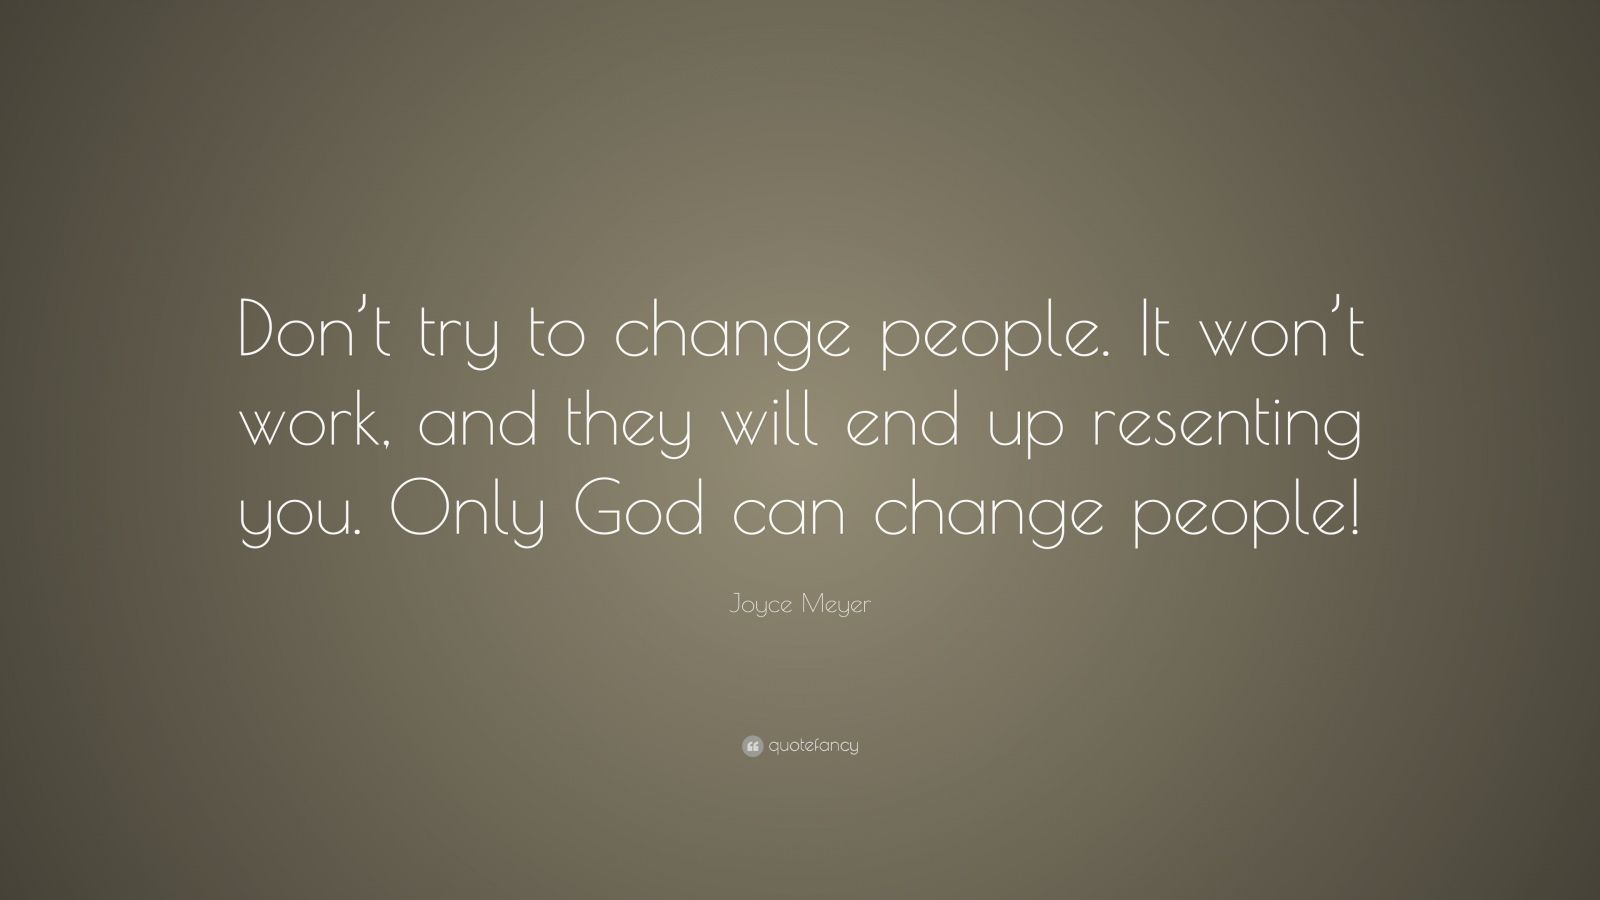 """Joyce Meyer Quote: """"Don't try to change people. It won't work, and they will end up resenting you. Only God can change people!"""""""